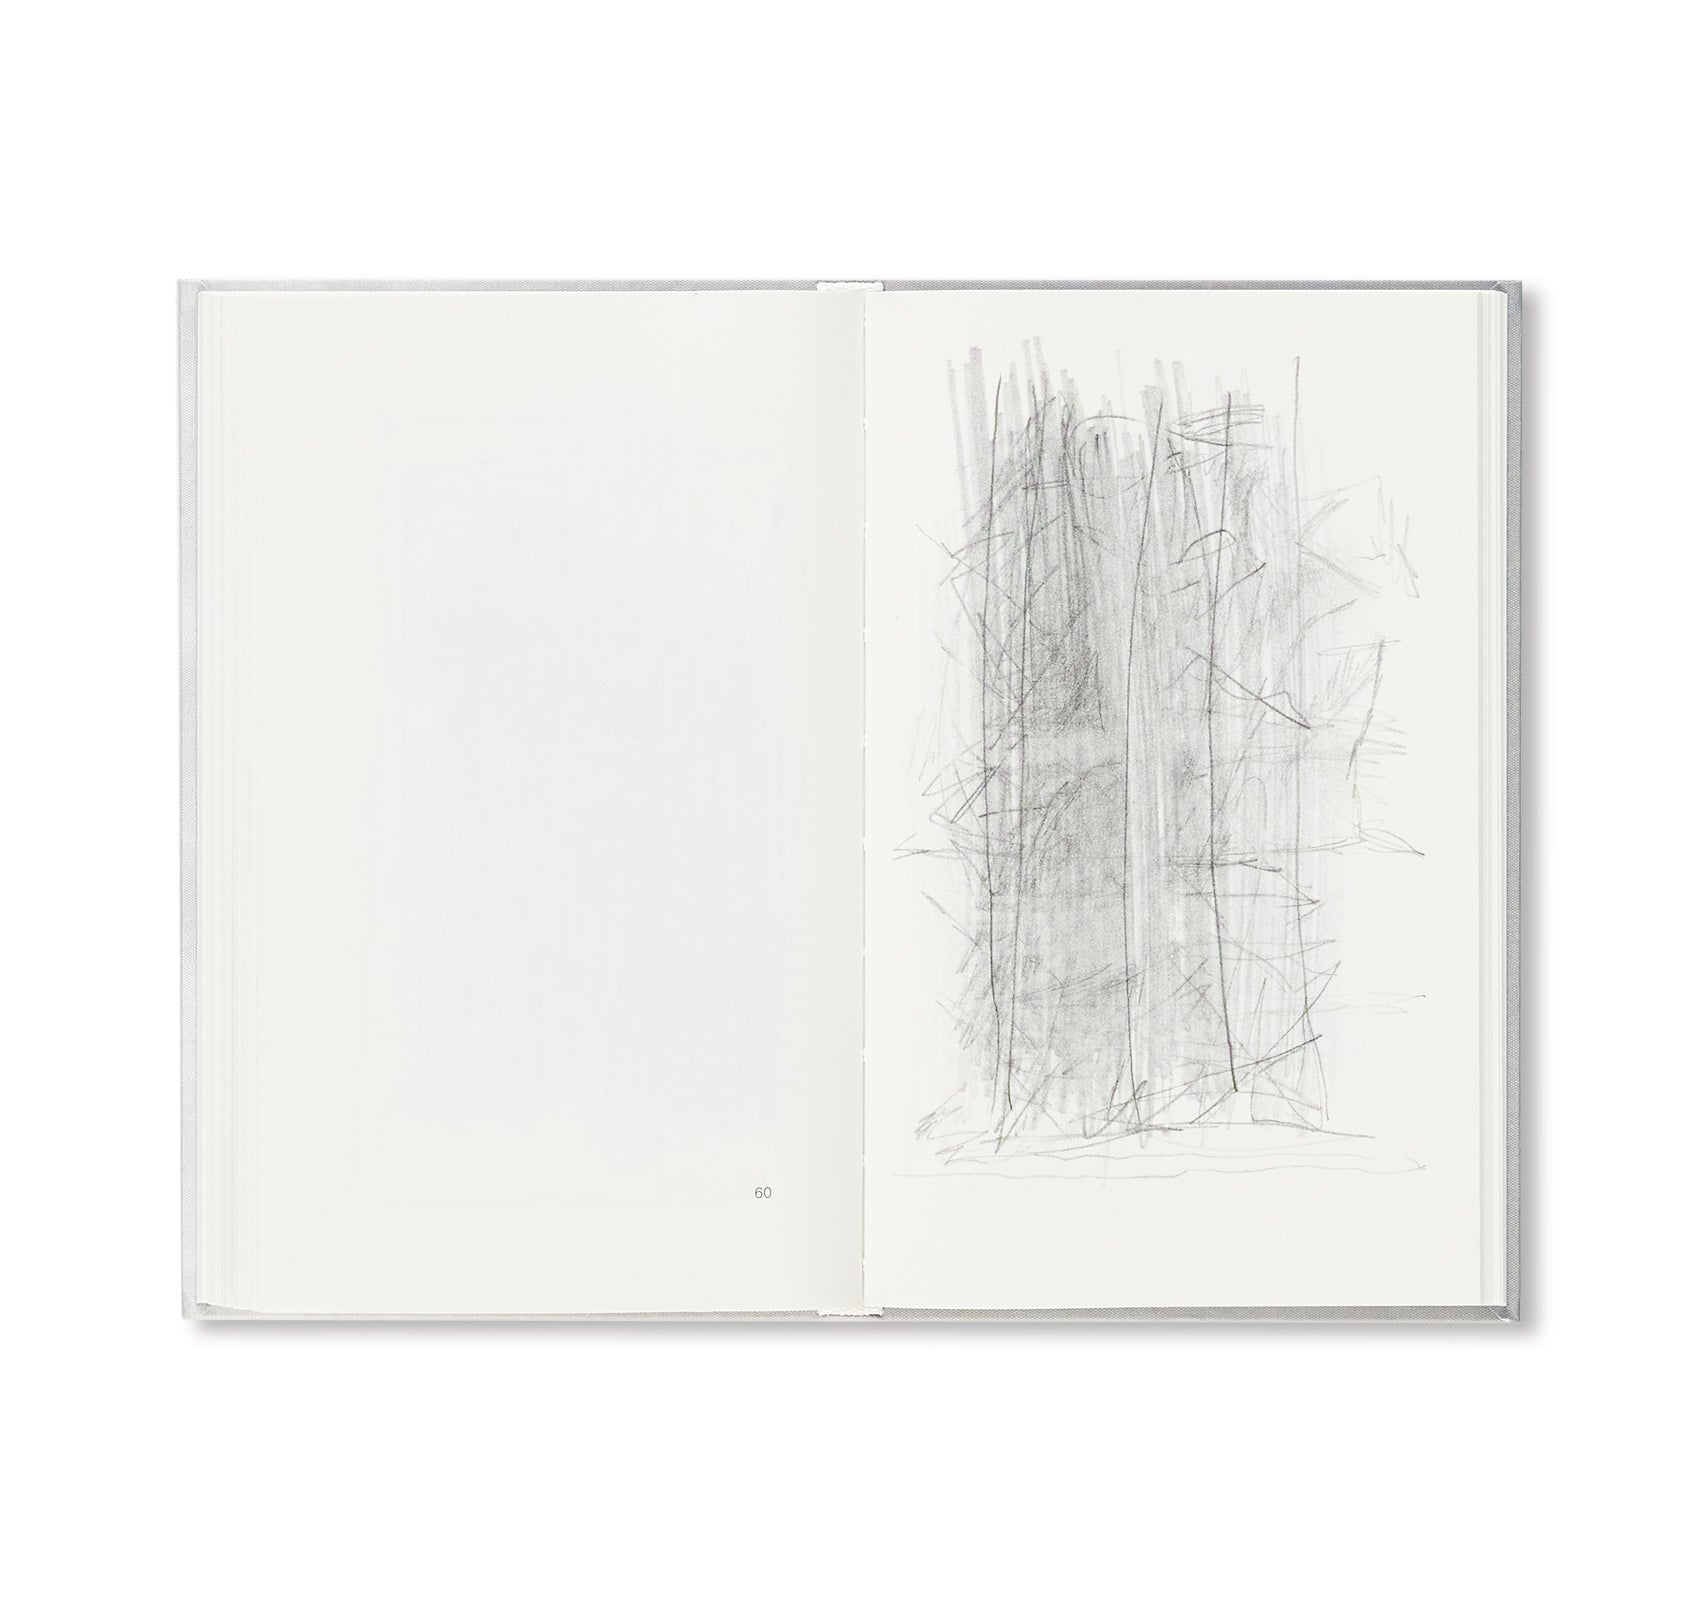 NIGHT SKETCHES by Gerhard Richter